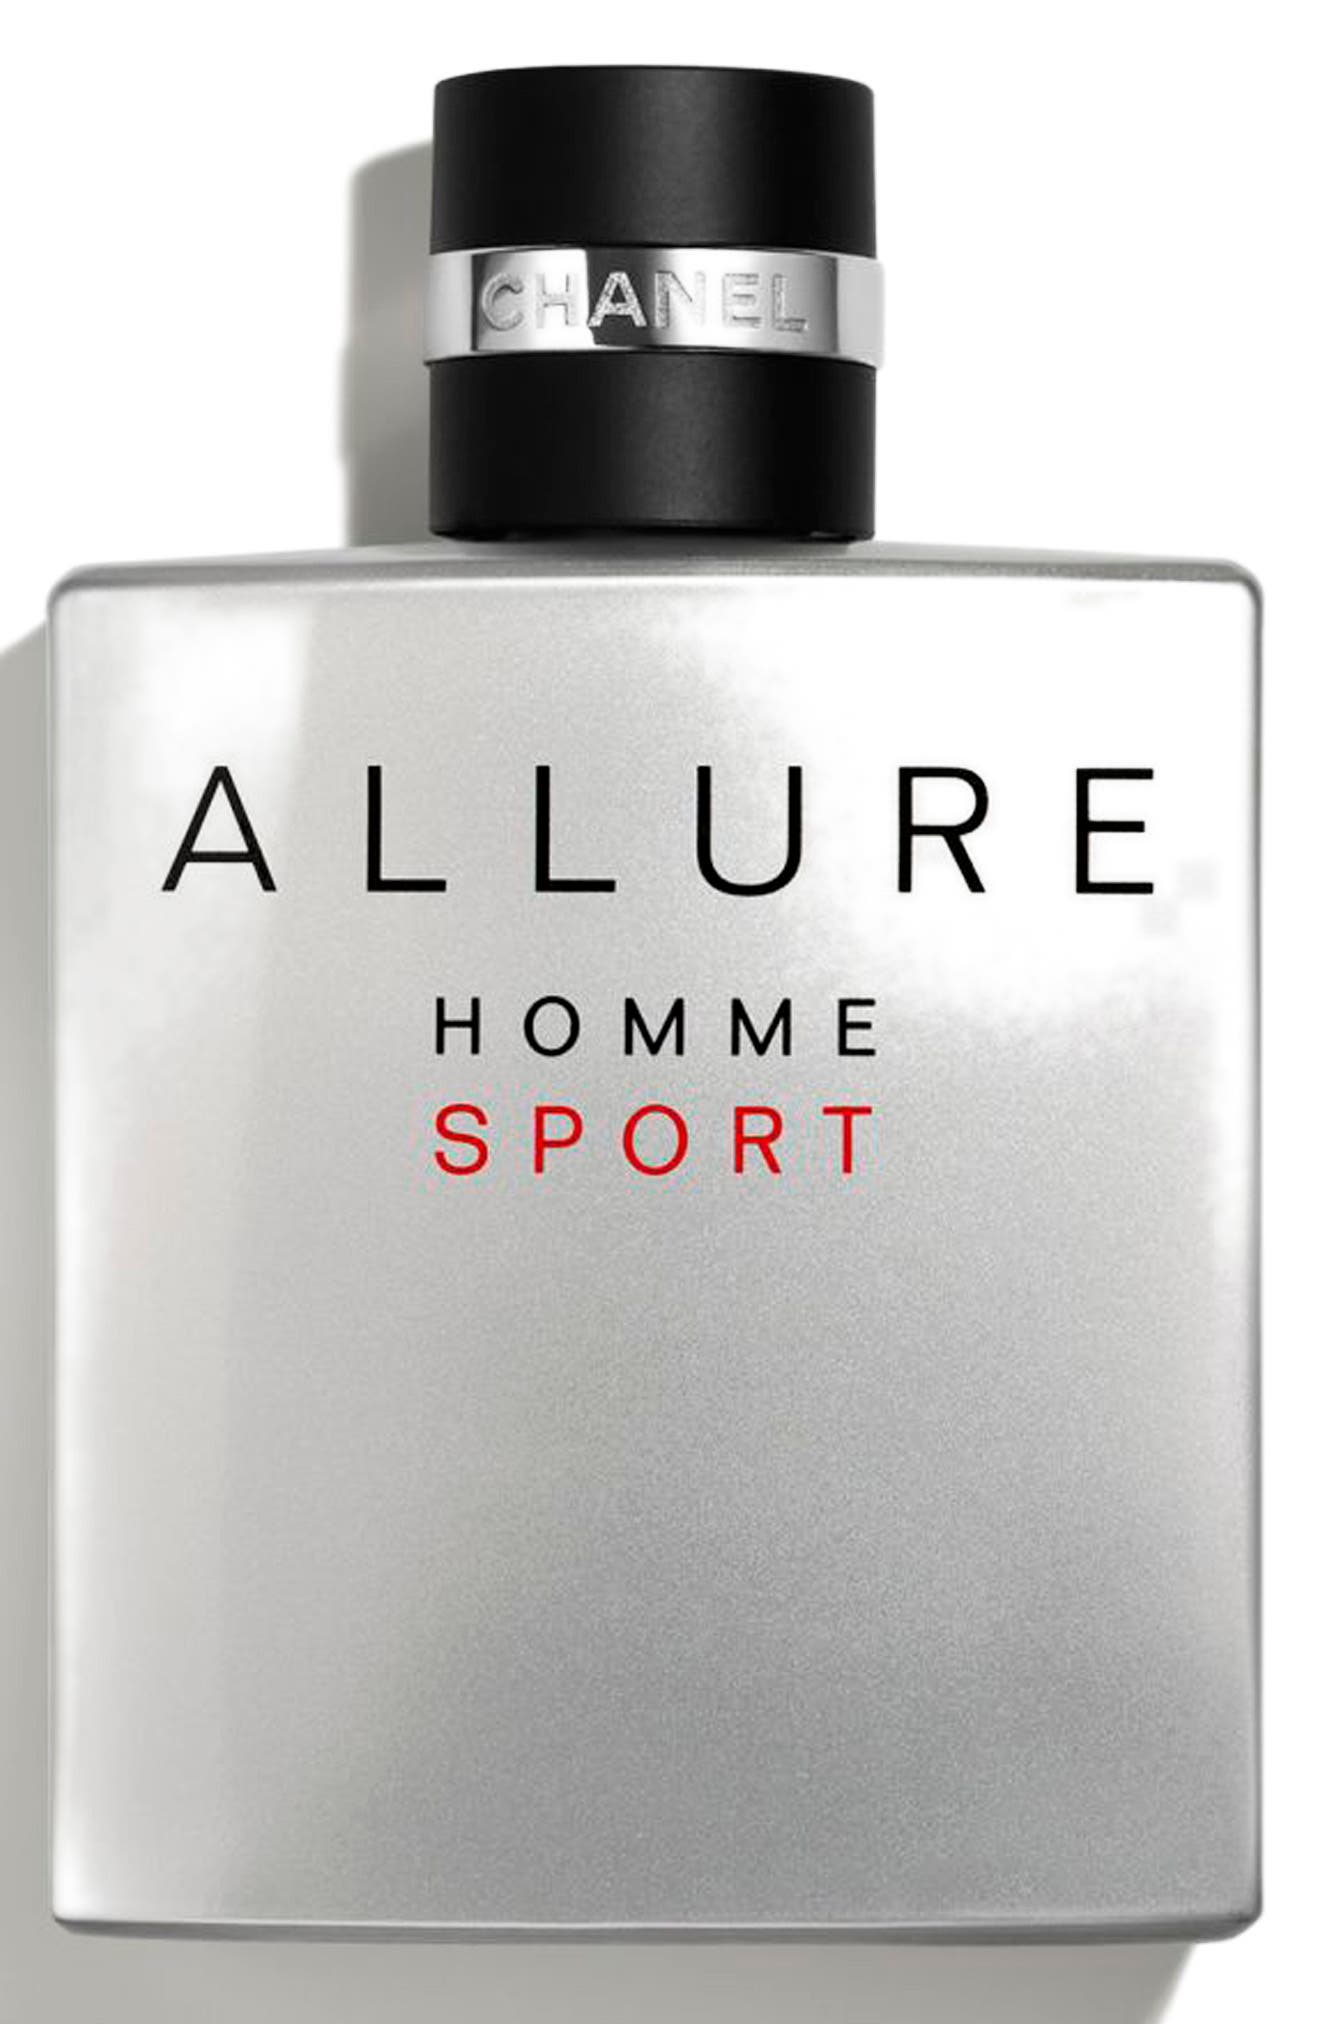 CHANEL, ALLURE HOMME SPORT Eau de Toilette Spray, Alternate thumbnail 2, color, NO COLOR